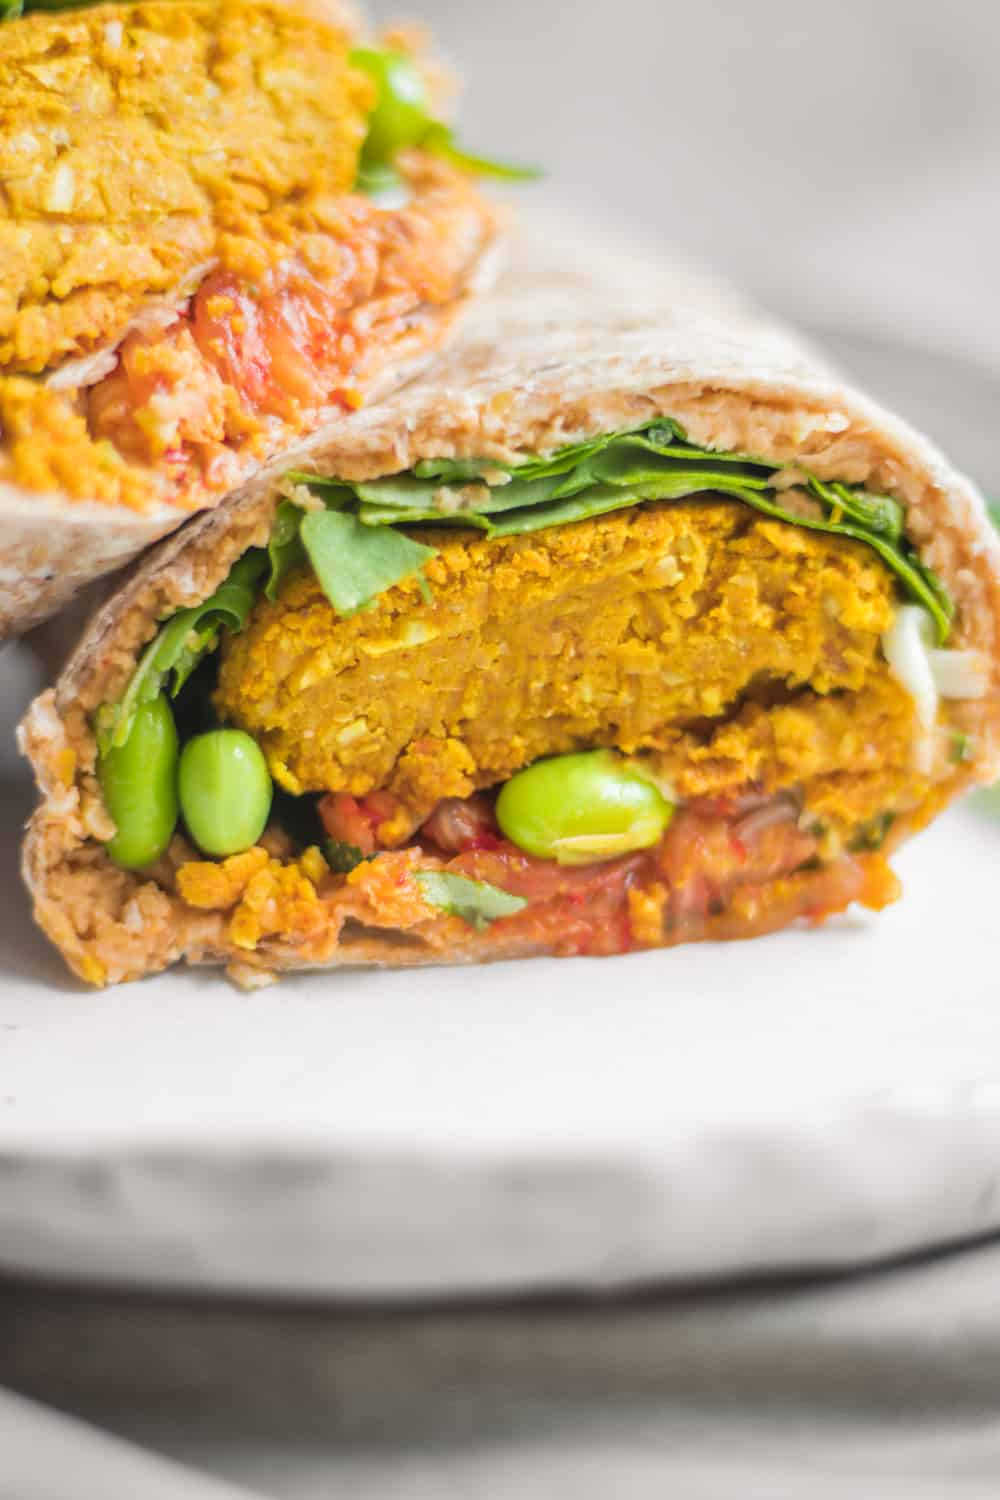 Healthy vegan baked falafel wraps with edamame and hummus